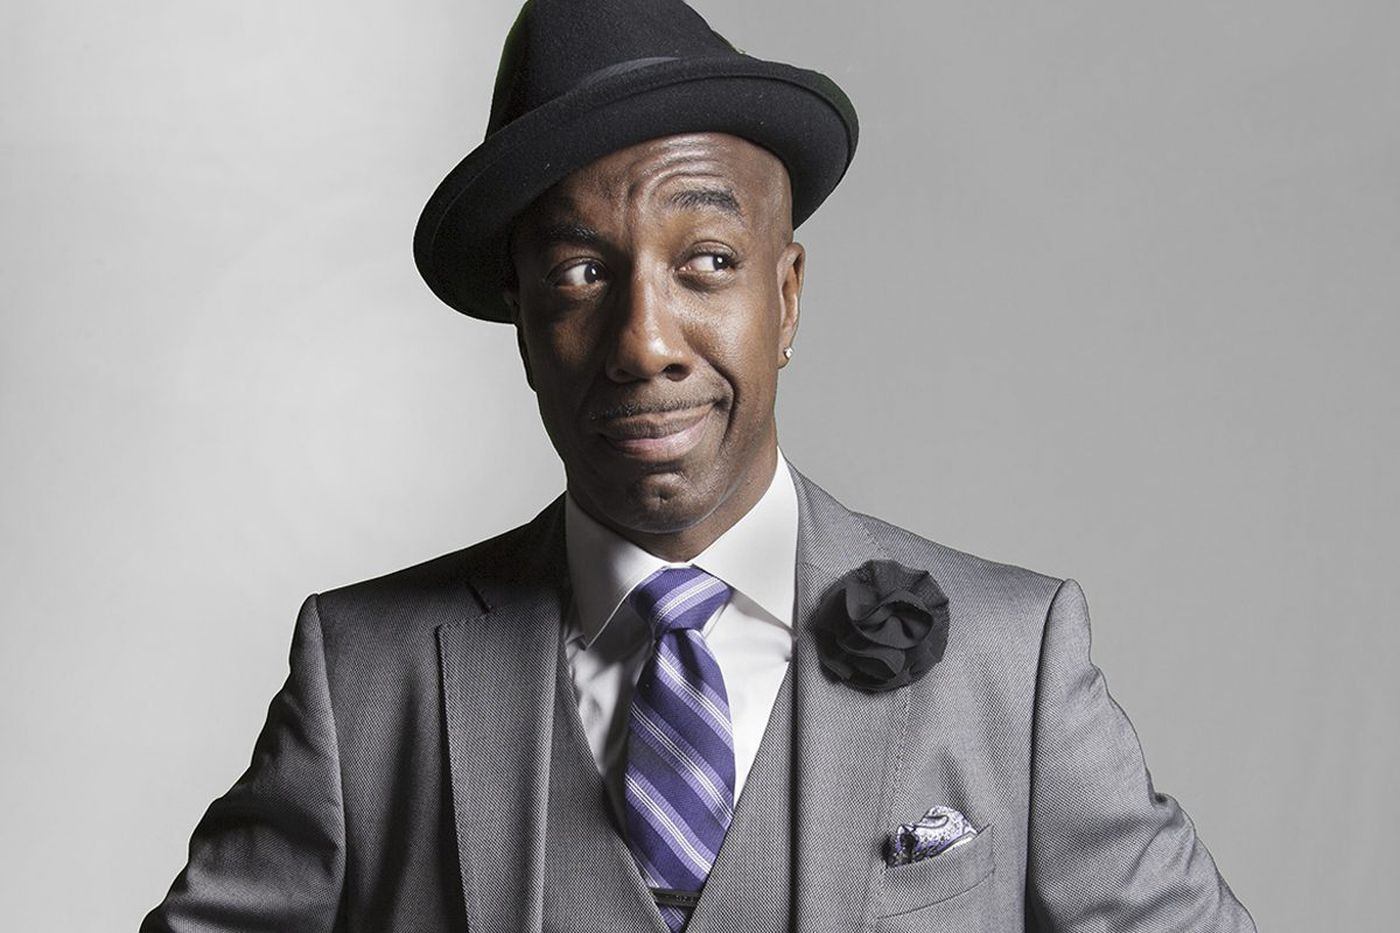 'Curb Your Enthusiasm's' JB Smoove talks comedy, P.C. culture ahead of Valley Forge date